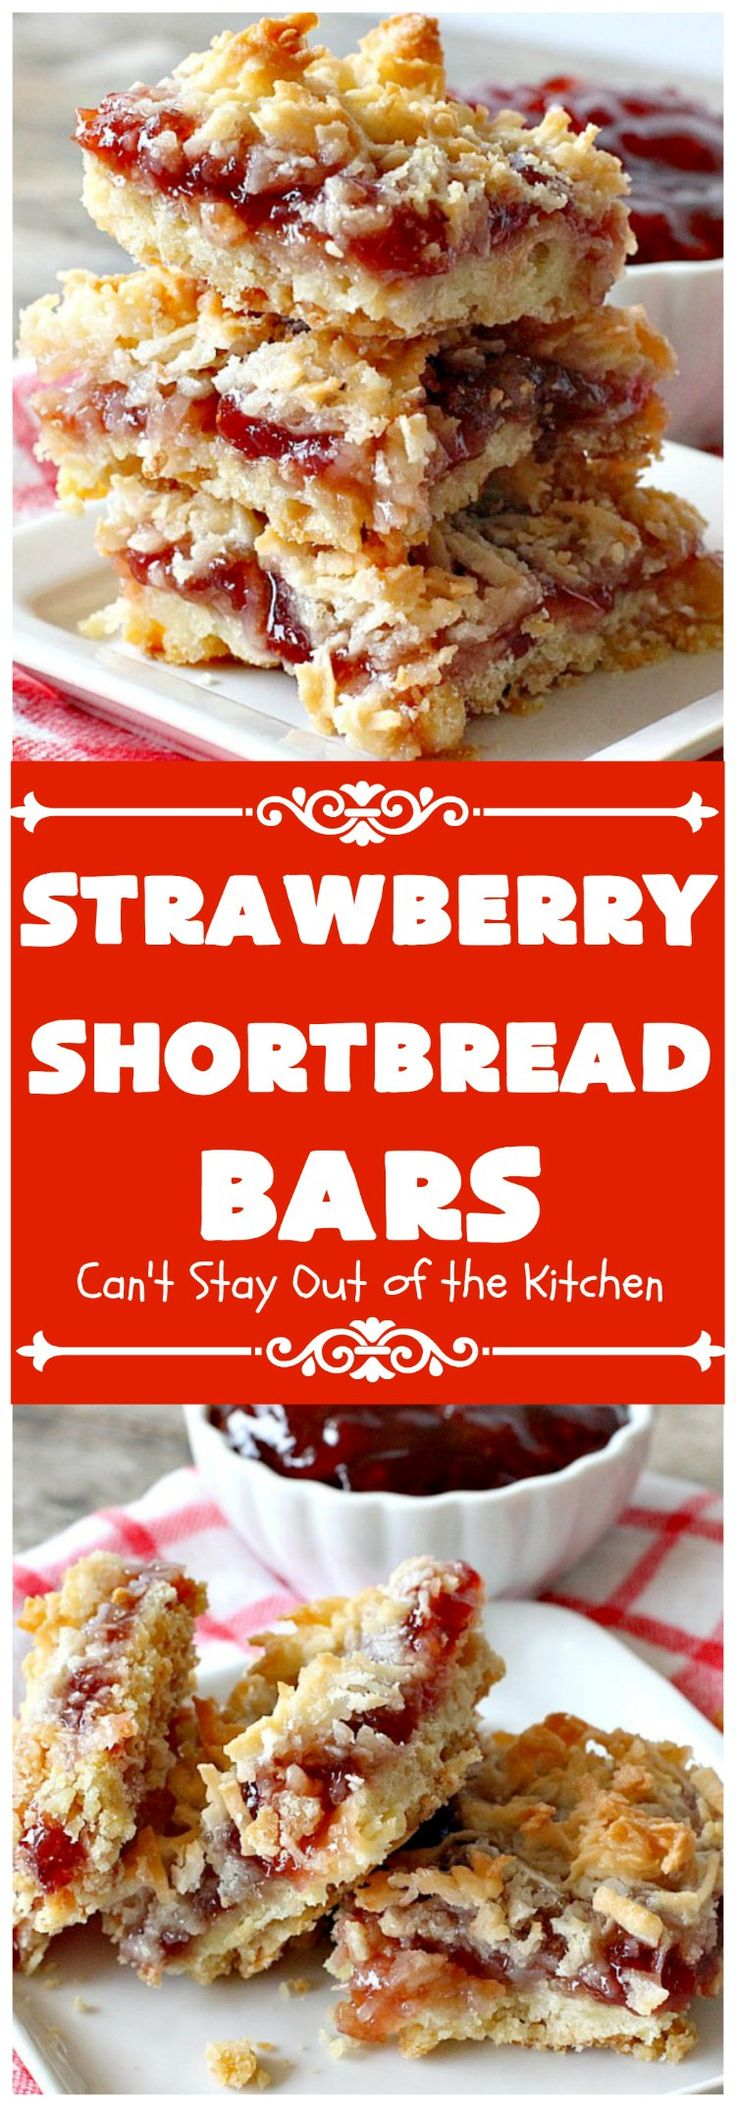 Strawberry Shortbread Bars | These fabulous cookies have a shortbread crust, layered with strawberry preserves & topped with a coconut topping. They are terrific for holiday parties & baking.